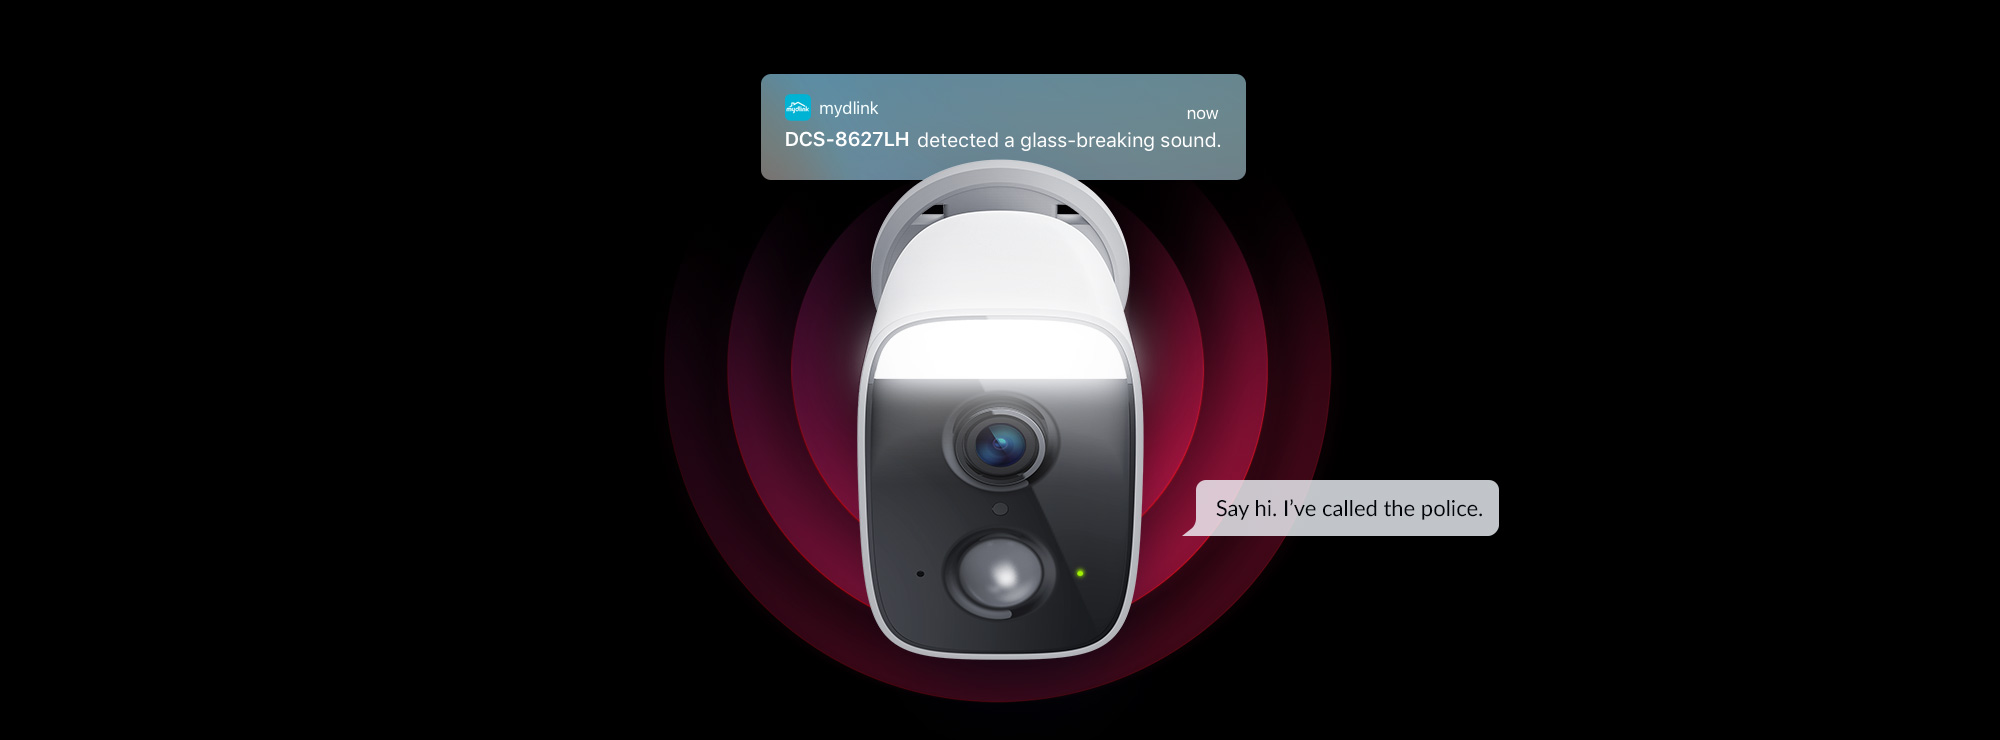 DCS-8627LH Full HD Outdoor Wi-Fi Spotlight Camera using Glass Breaking sound detection